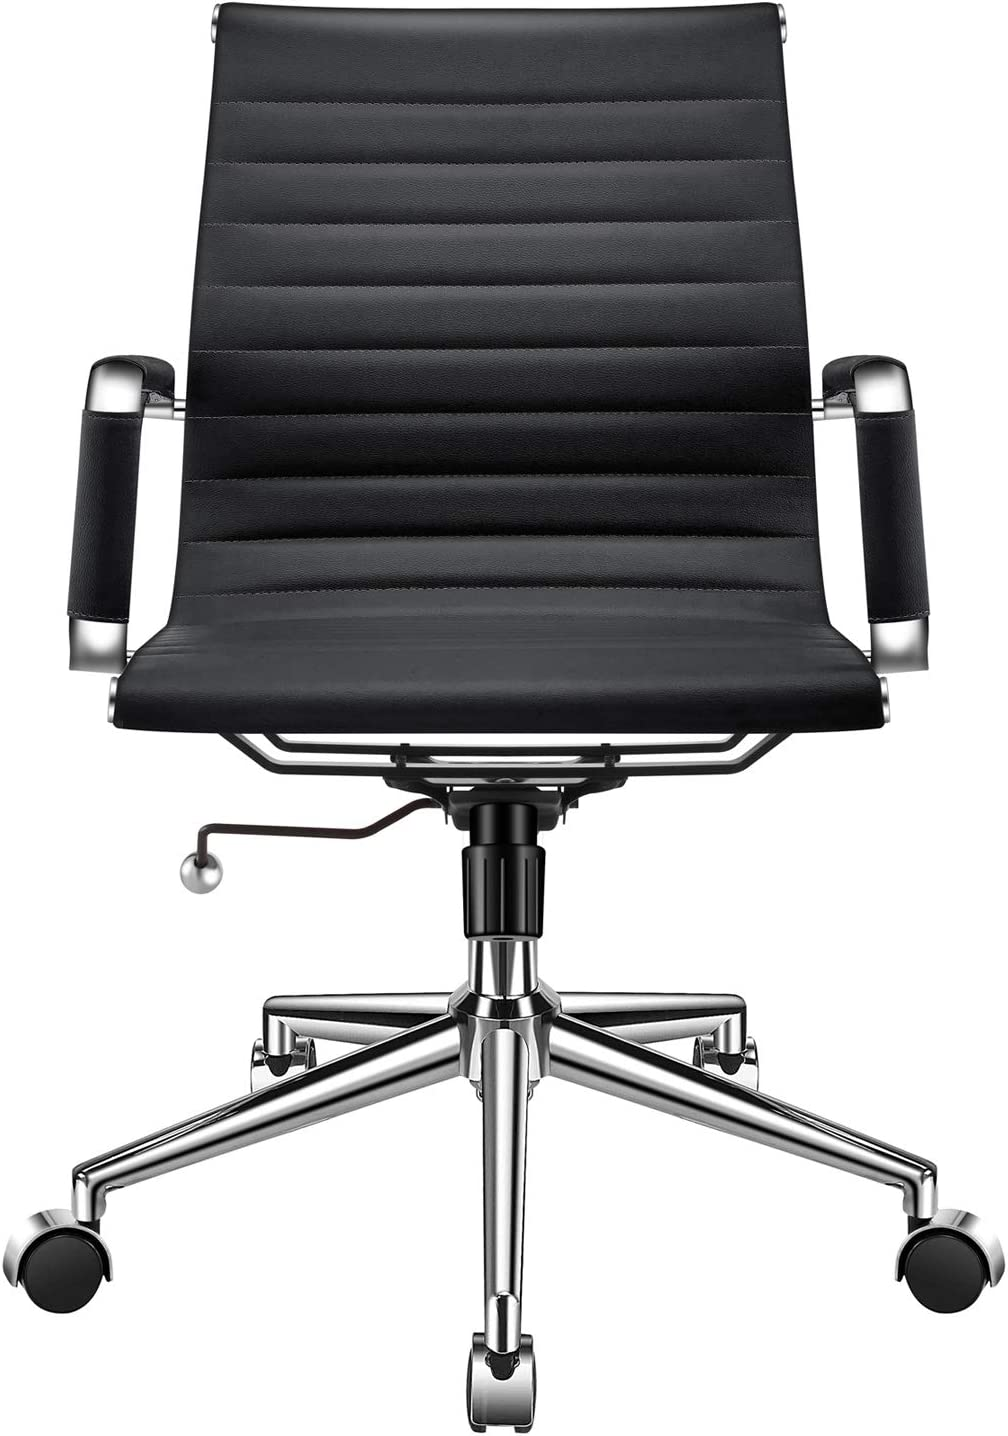 LUXMOD Modern Office Chair, Mid Back Office Chair Black, Desk Chair with Armrest, Black Conference Chair, Ribbed Office Chair, Black Swivel Chair-Black